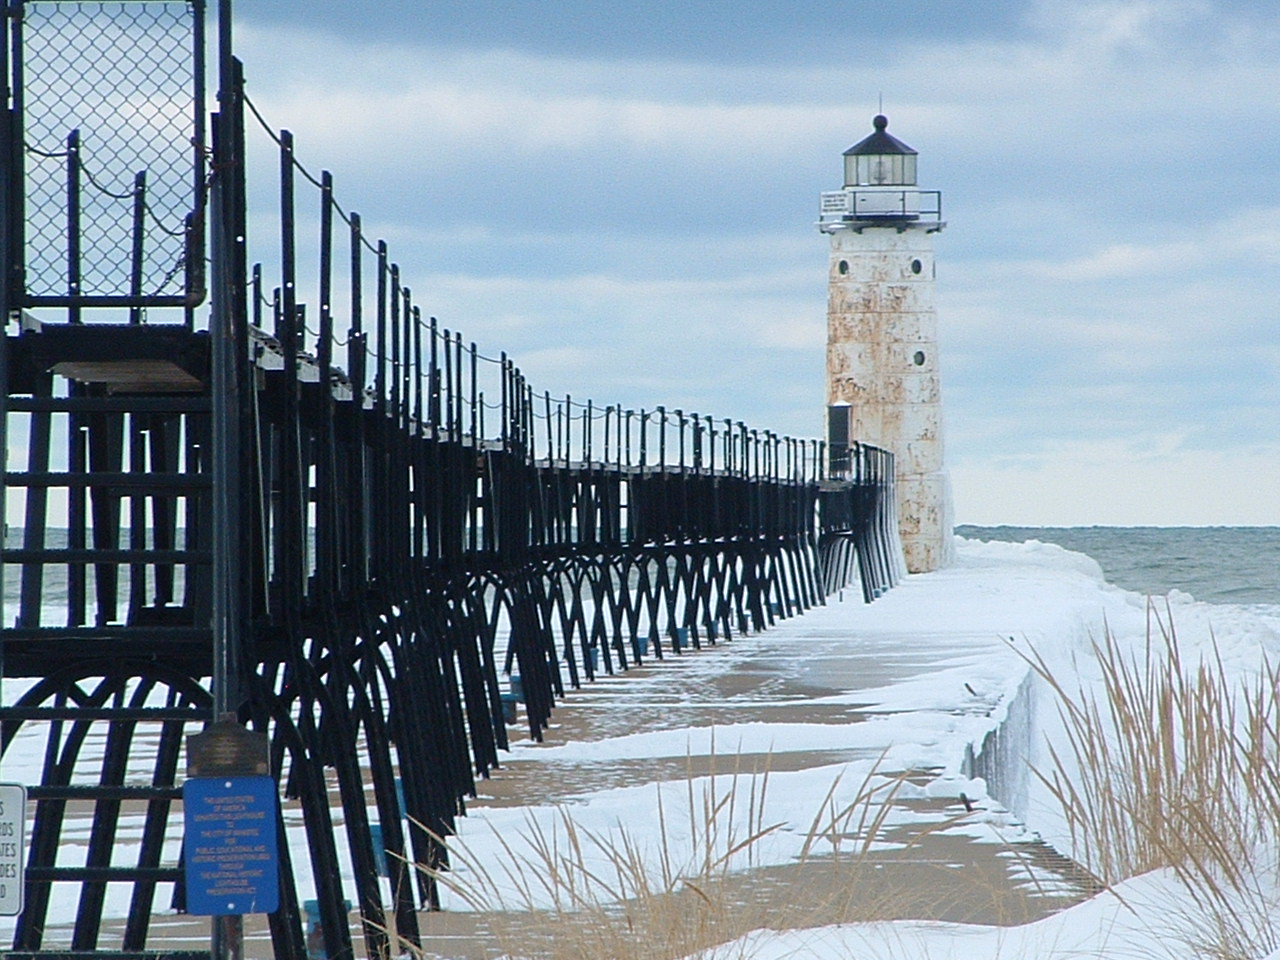 great view of the catwalk and Lighthouse at Fifth Avenue with snow on the pier taken in 2013